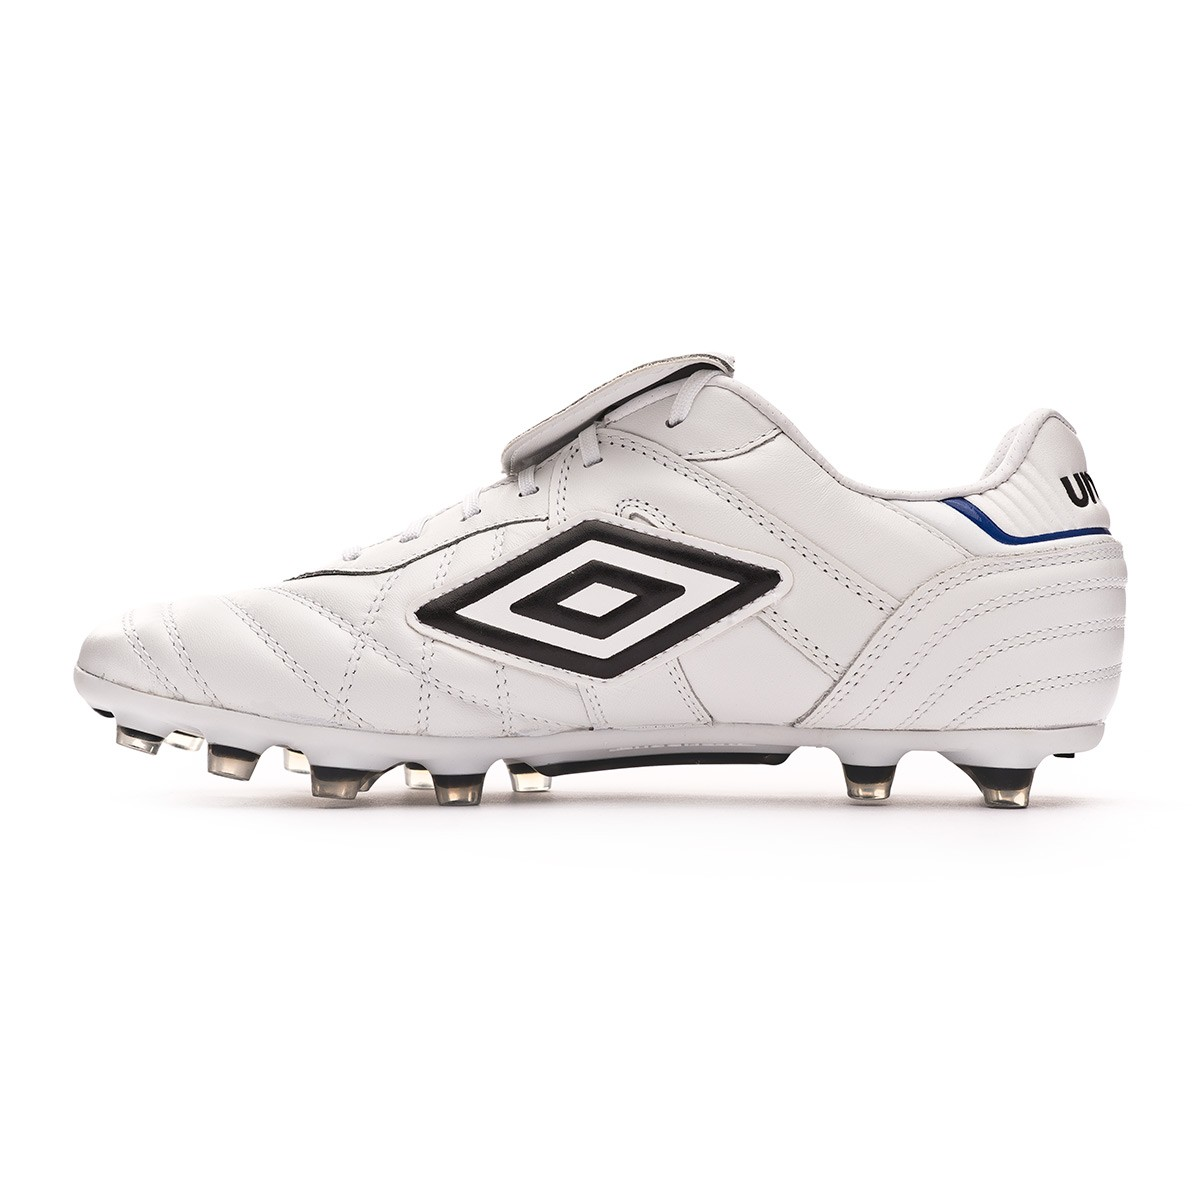 exquisite design best authentic newest Football Boots Umbro Speciali Eternal Pro HG White-Black ...